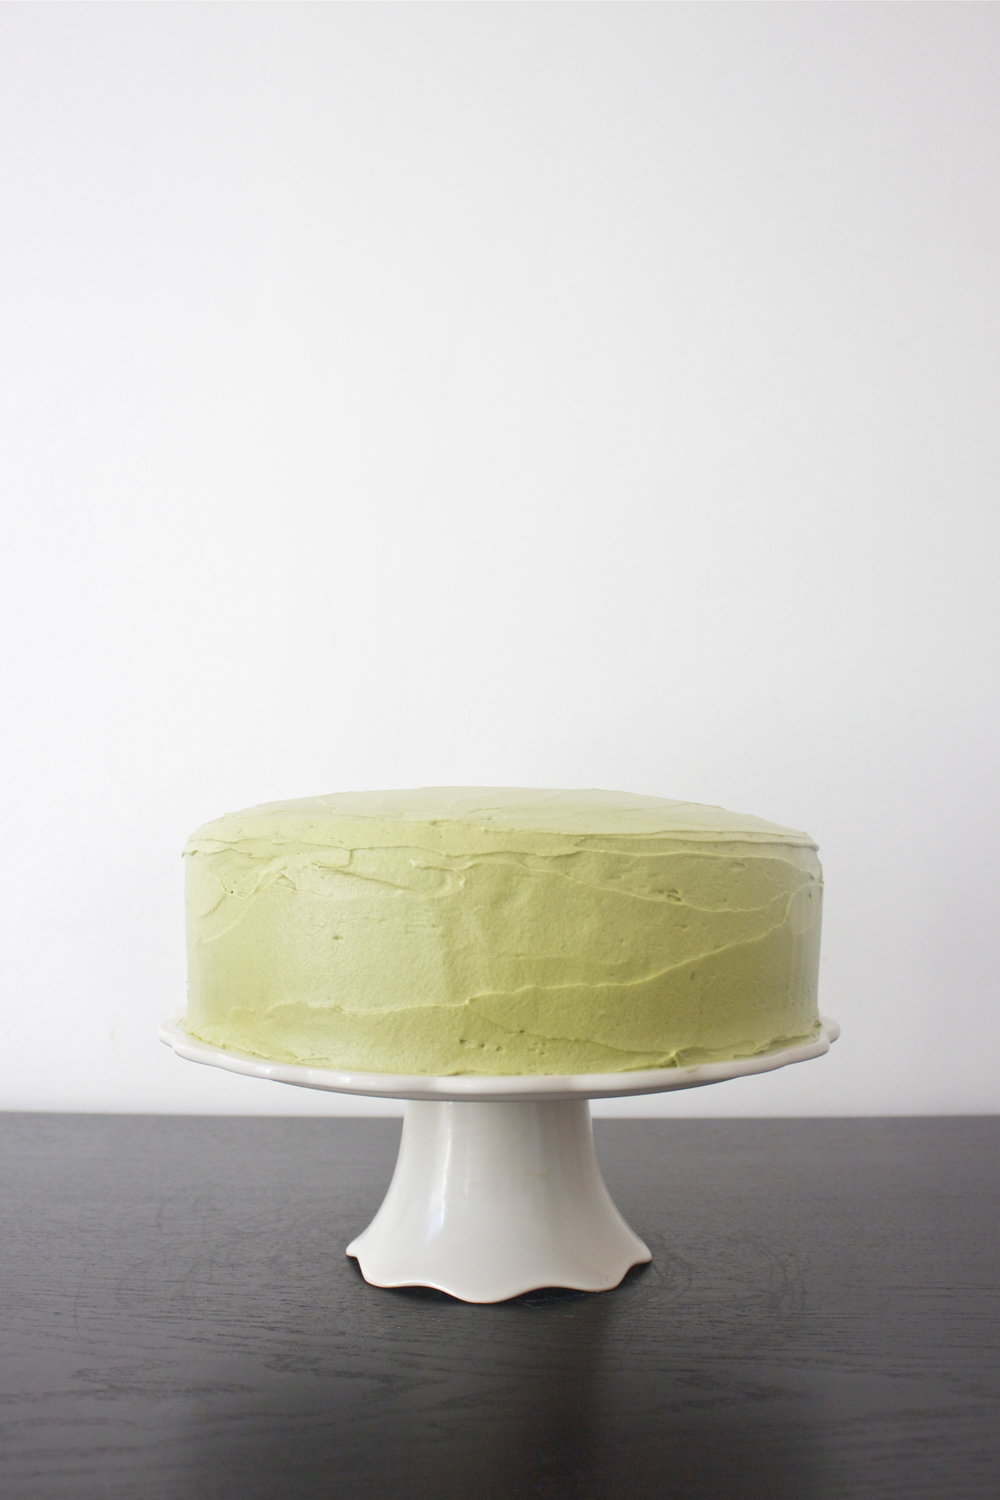 vegan chocolate adzuki bean cake with matcha green tea cream cheese frosting